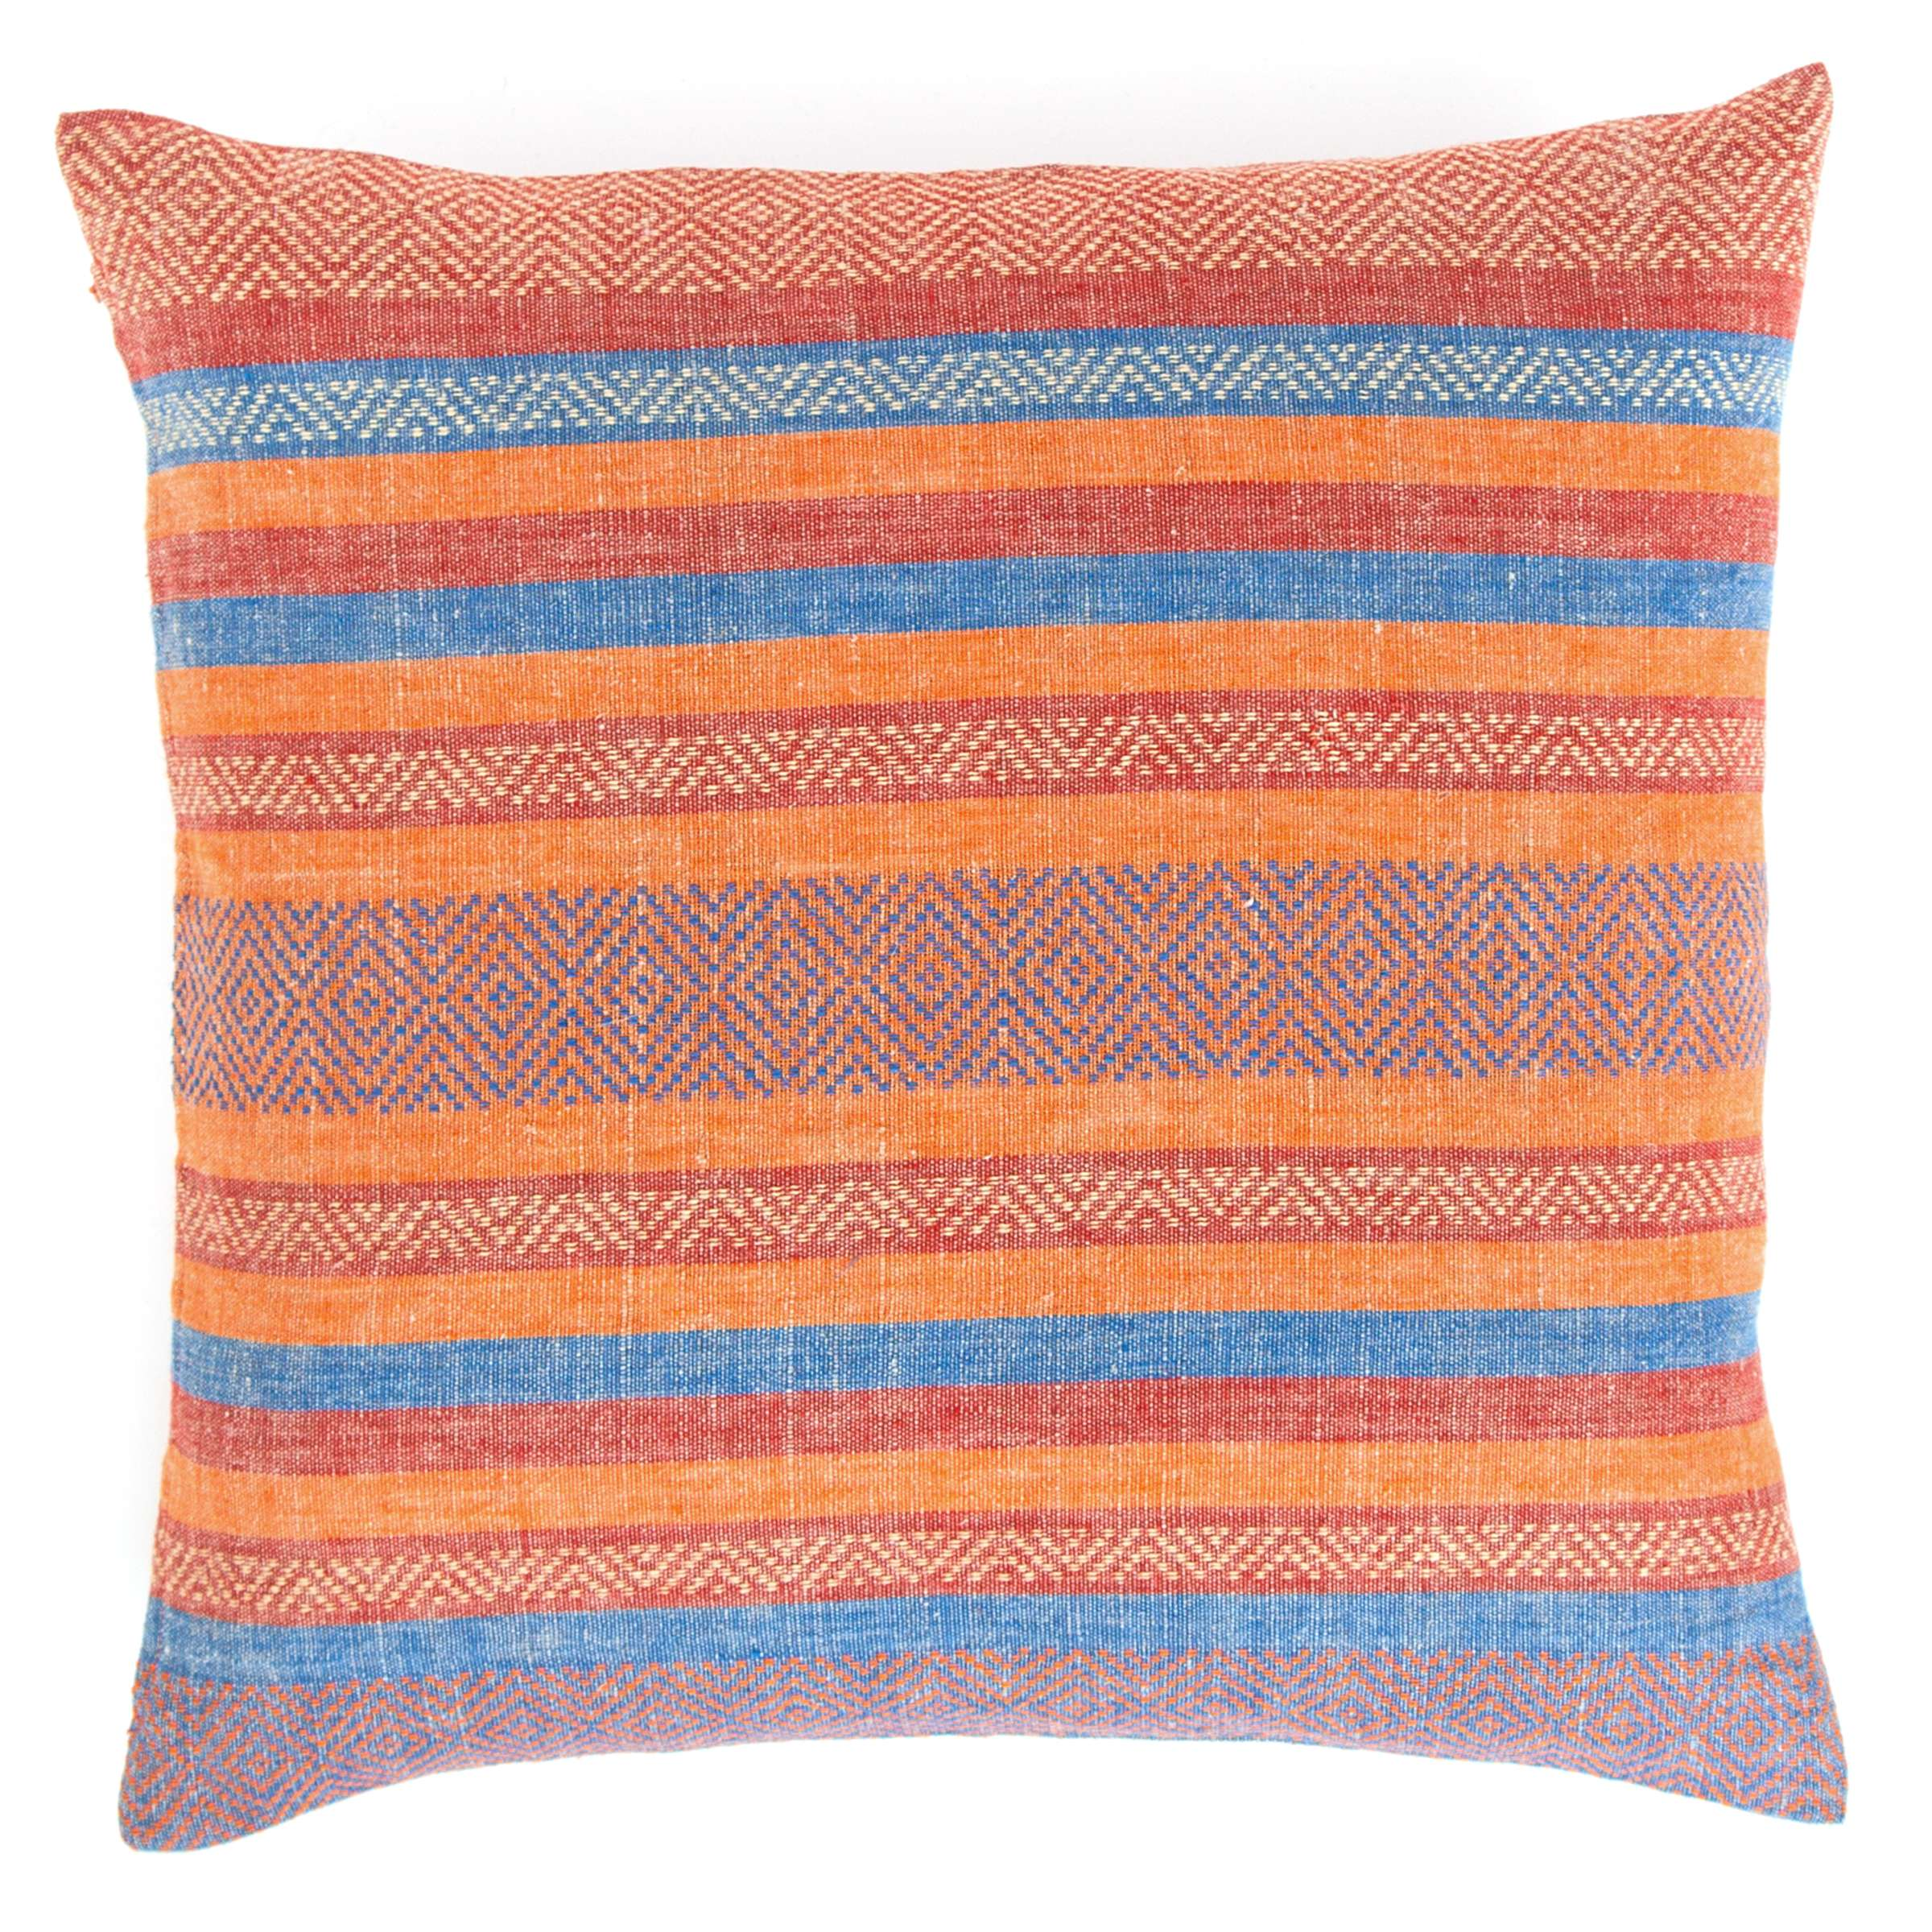 Decorative Pillows Outlet : Spice Root Decorative Pillow The Outlet